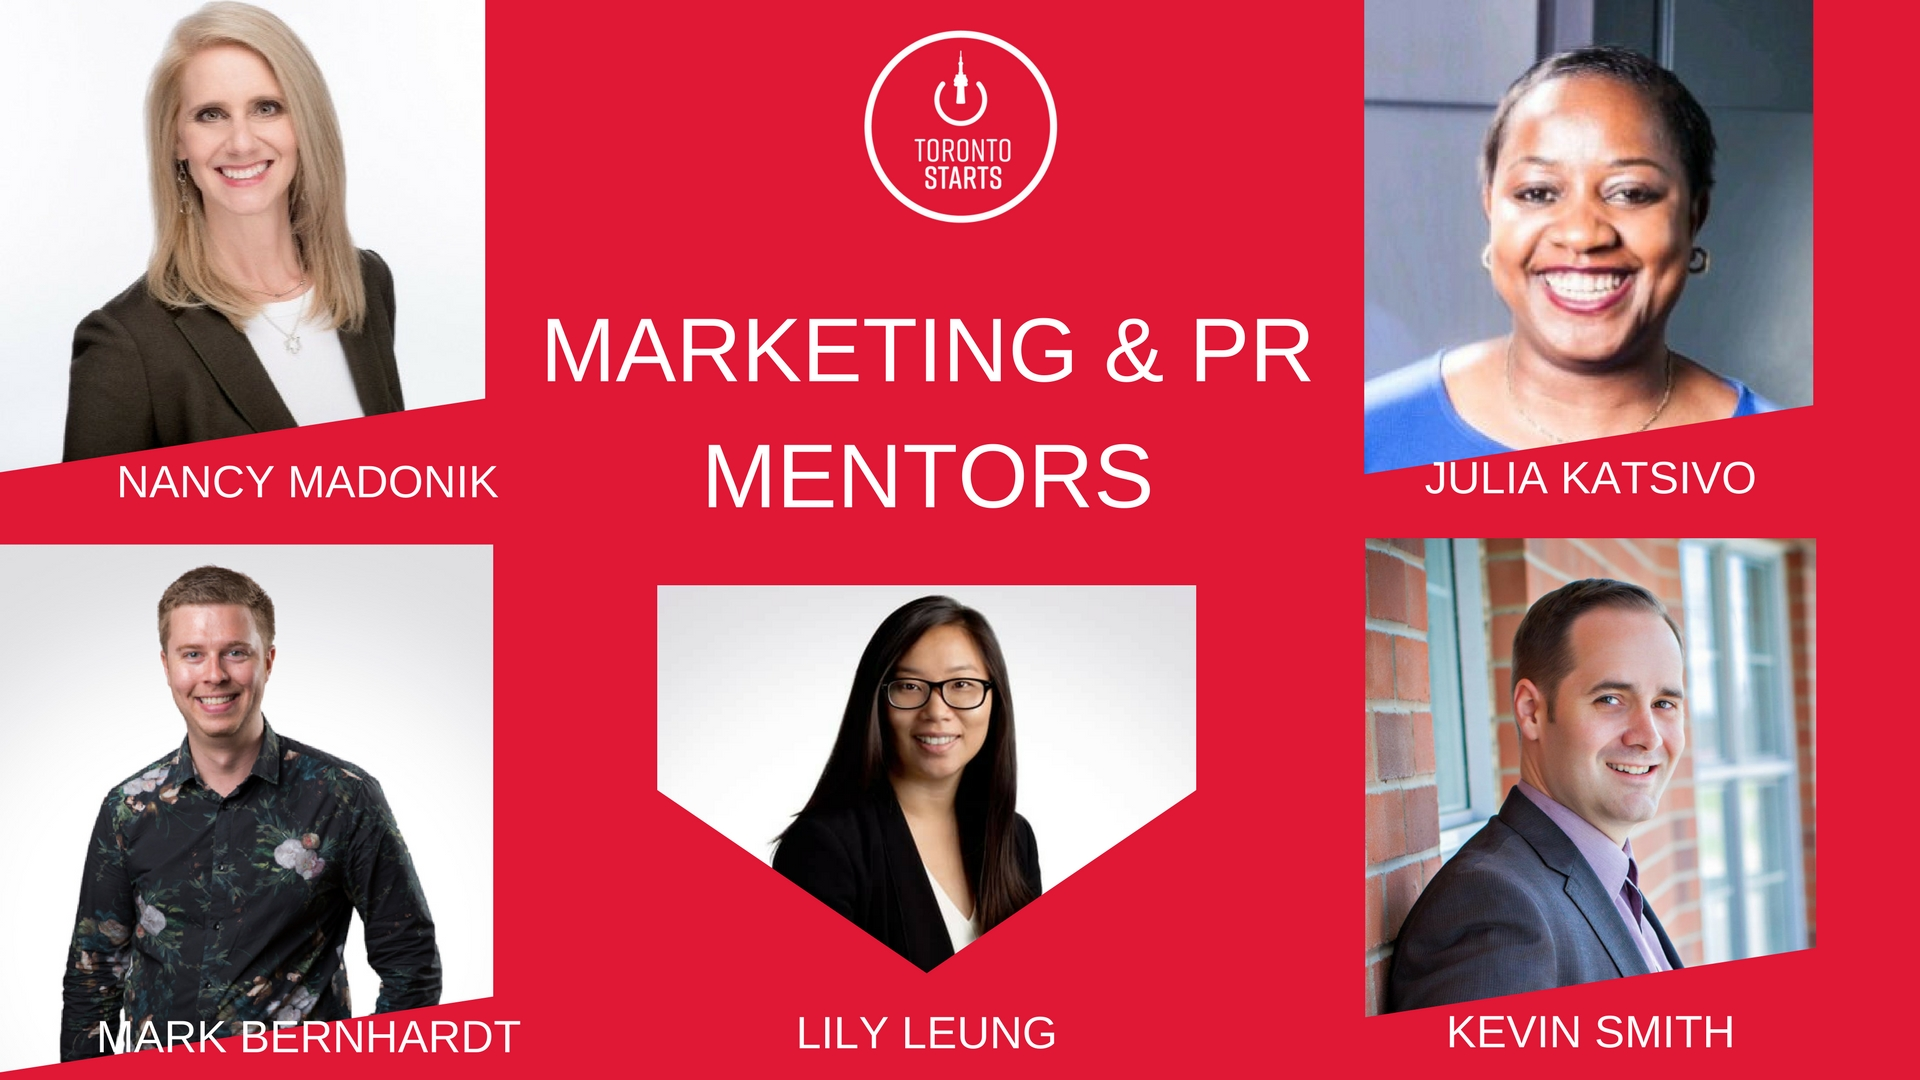 TorontoStarts Marketing & PR Mentors